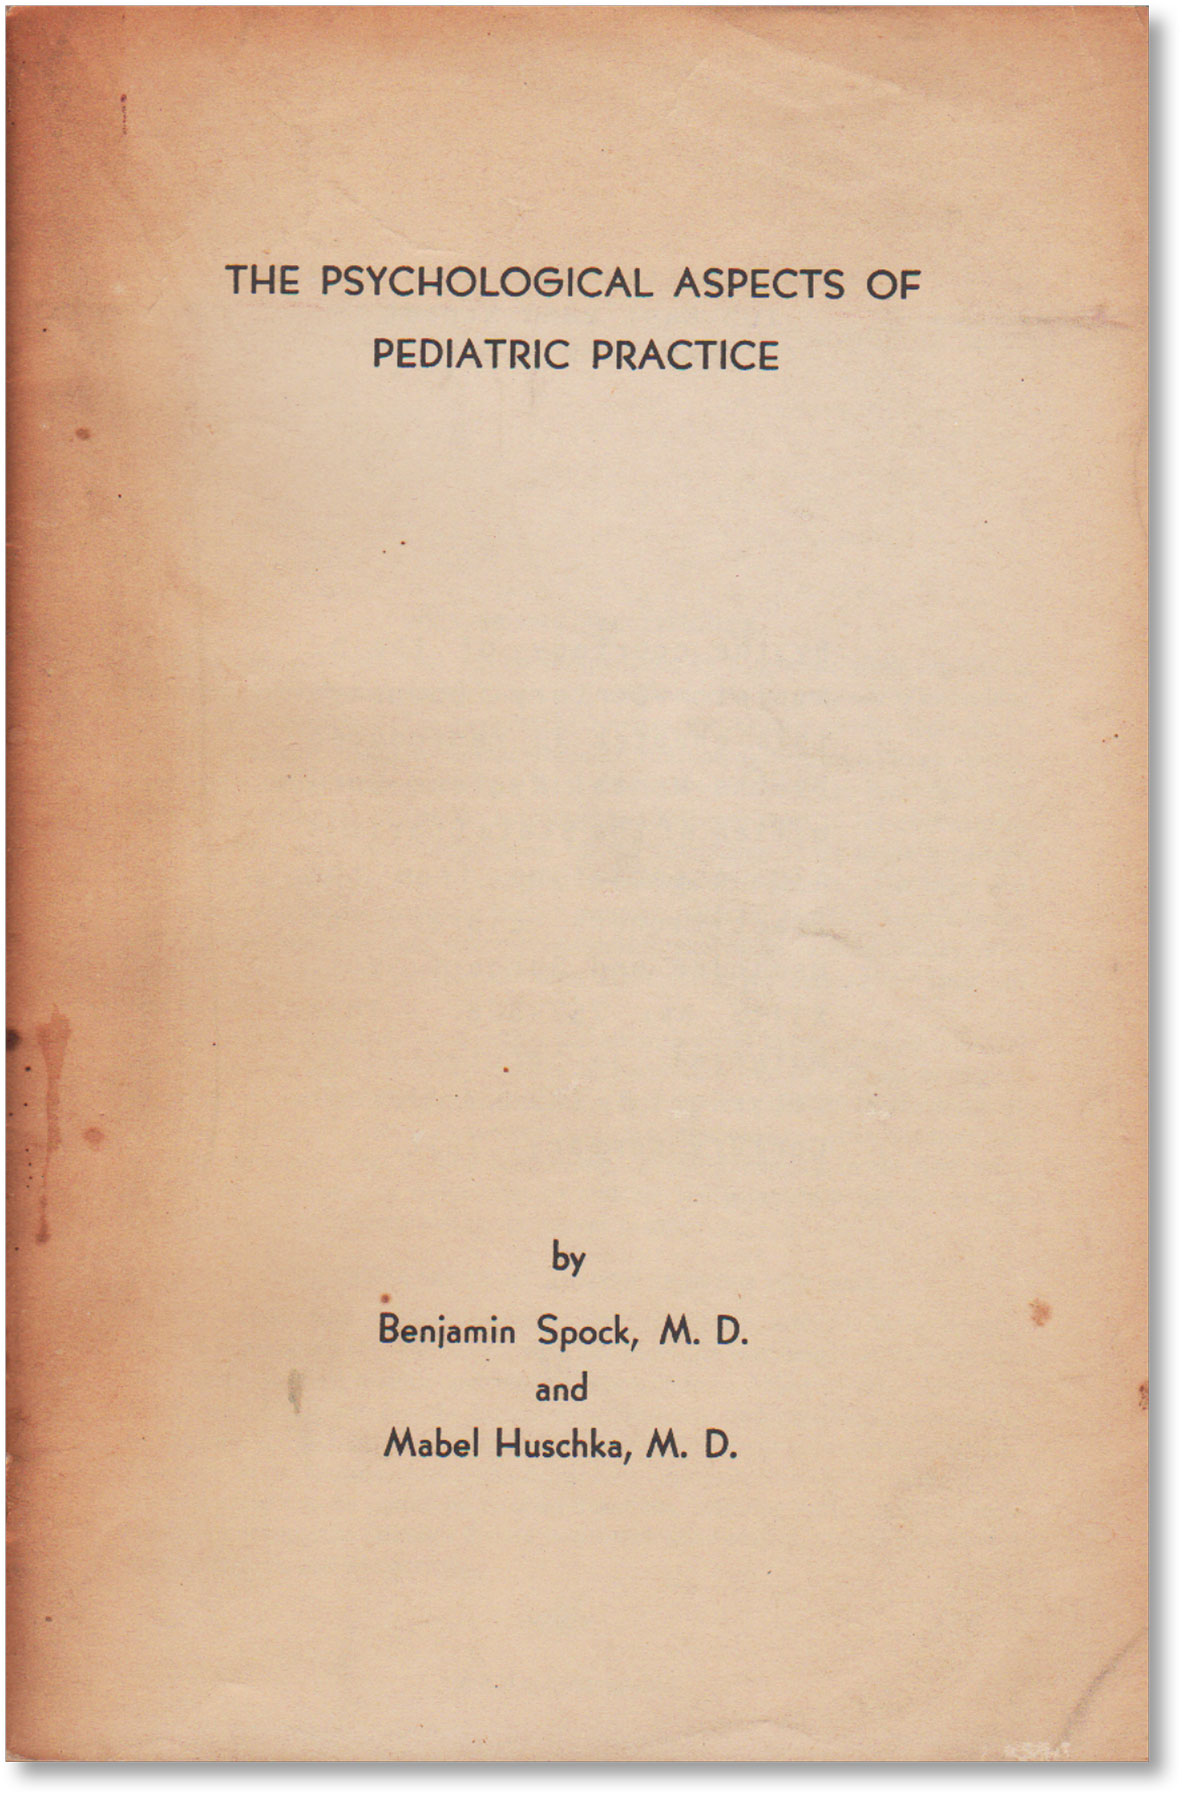 Psychological Aspects of Pediatric Practice. PEDIATRIC PSYCHOLOGY, Benjamin SPOCK, Mabel Huschka.